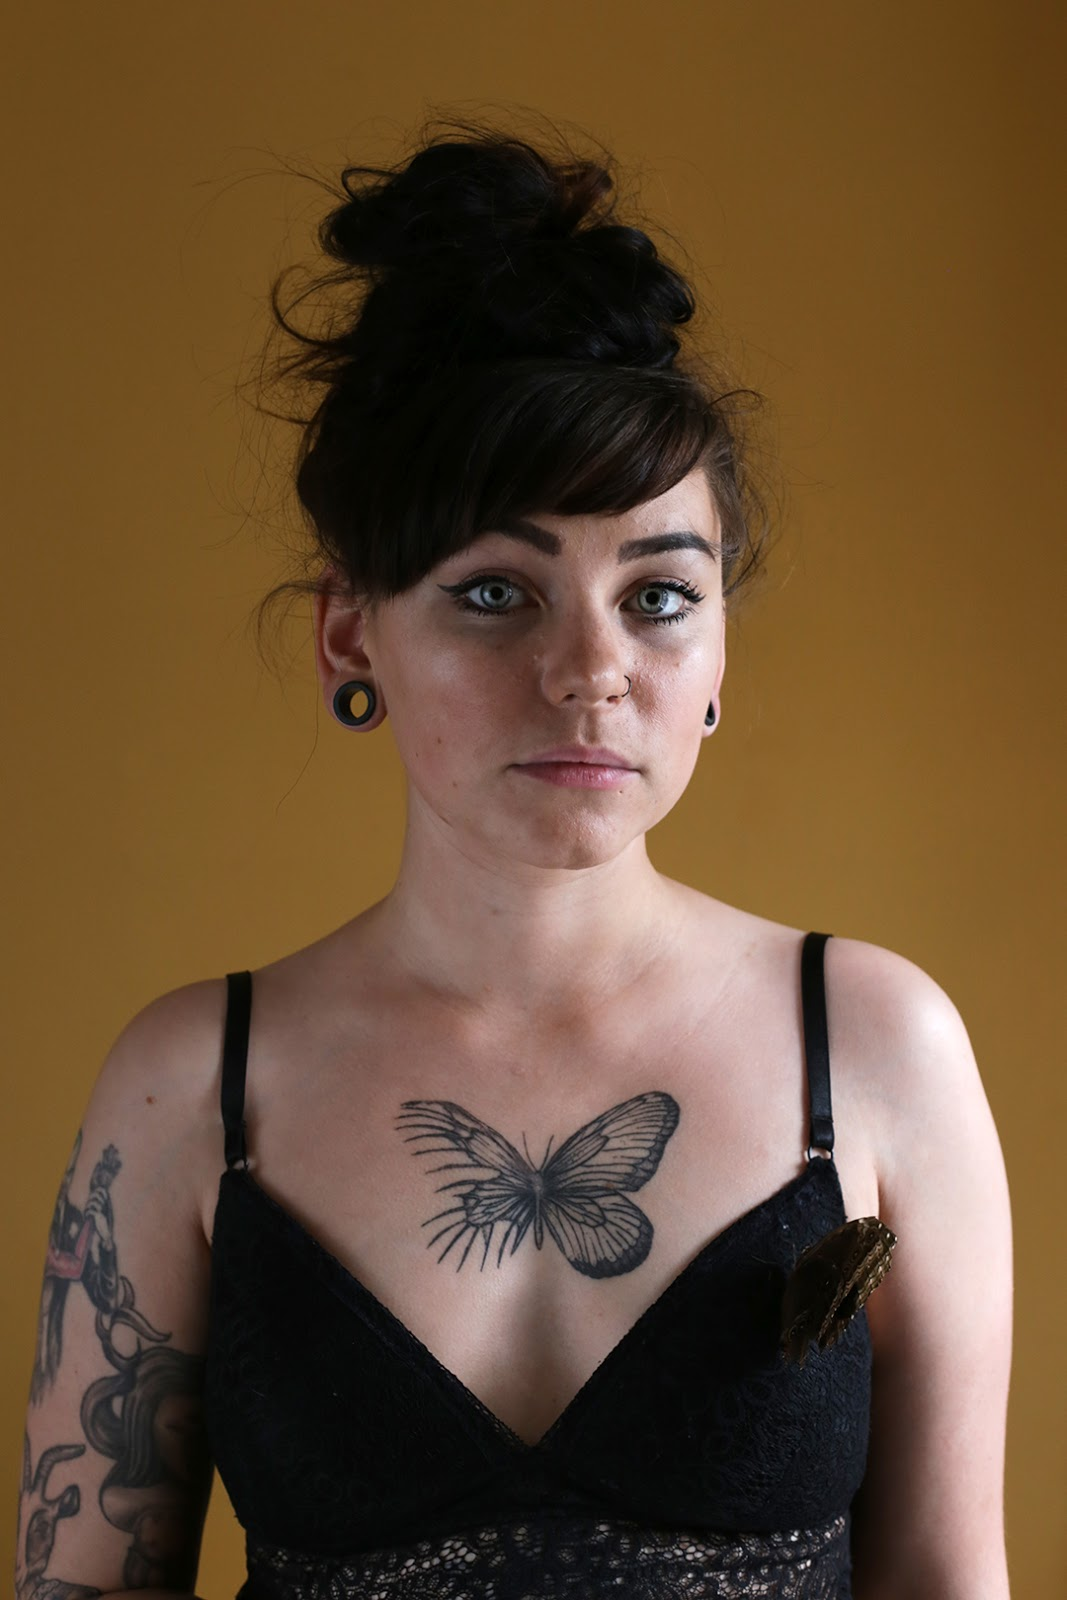 Women With Tattoos-5174